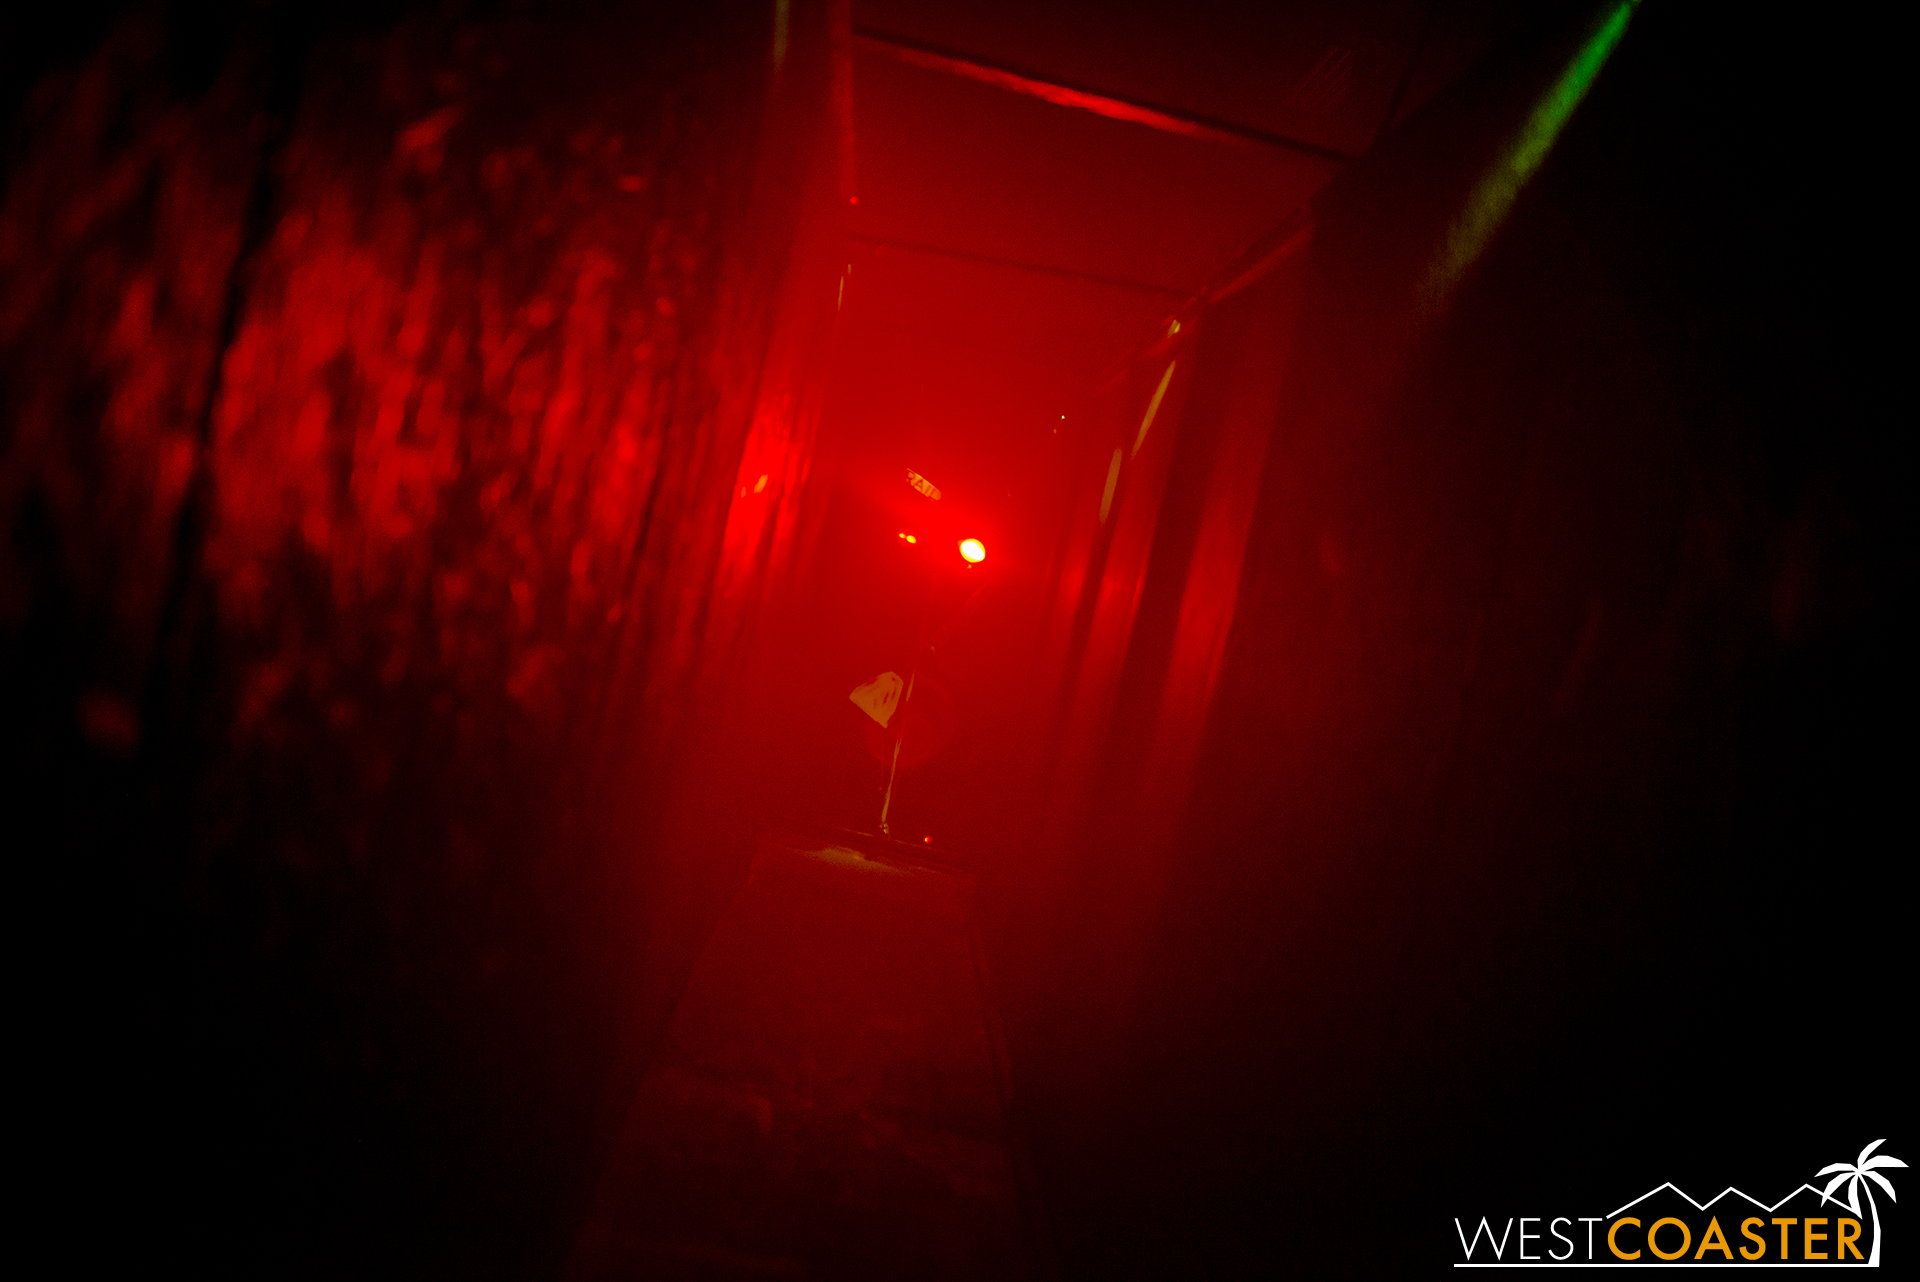 The blinding glow of a red spot is one of my disorienting devices used in the maze.